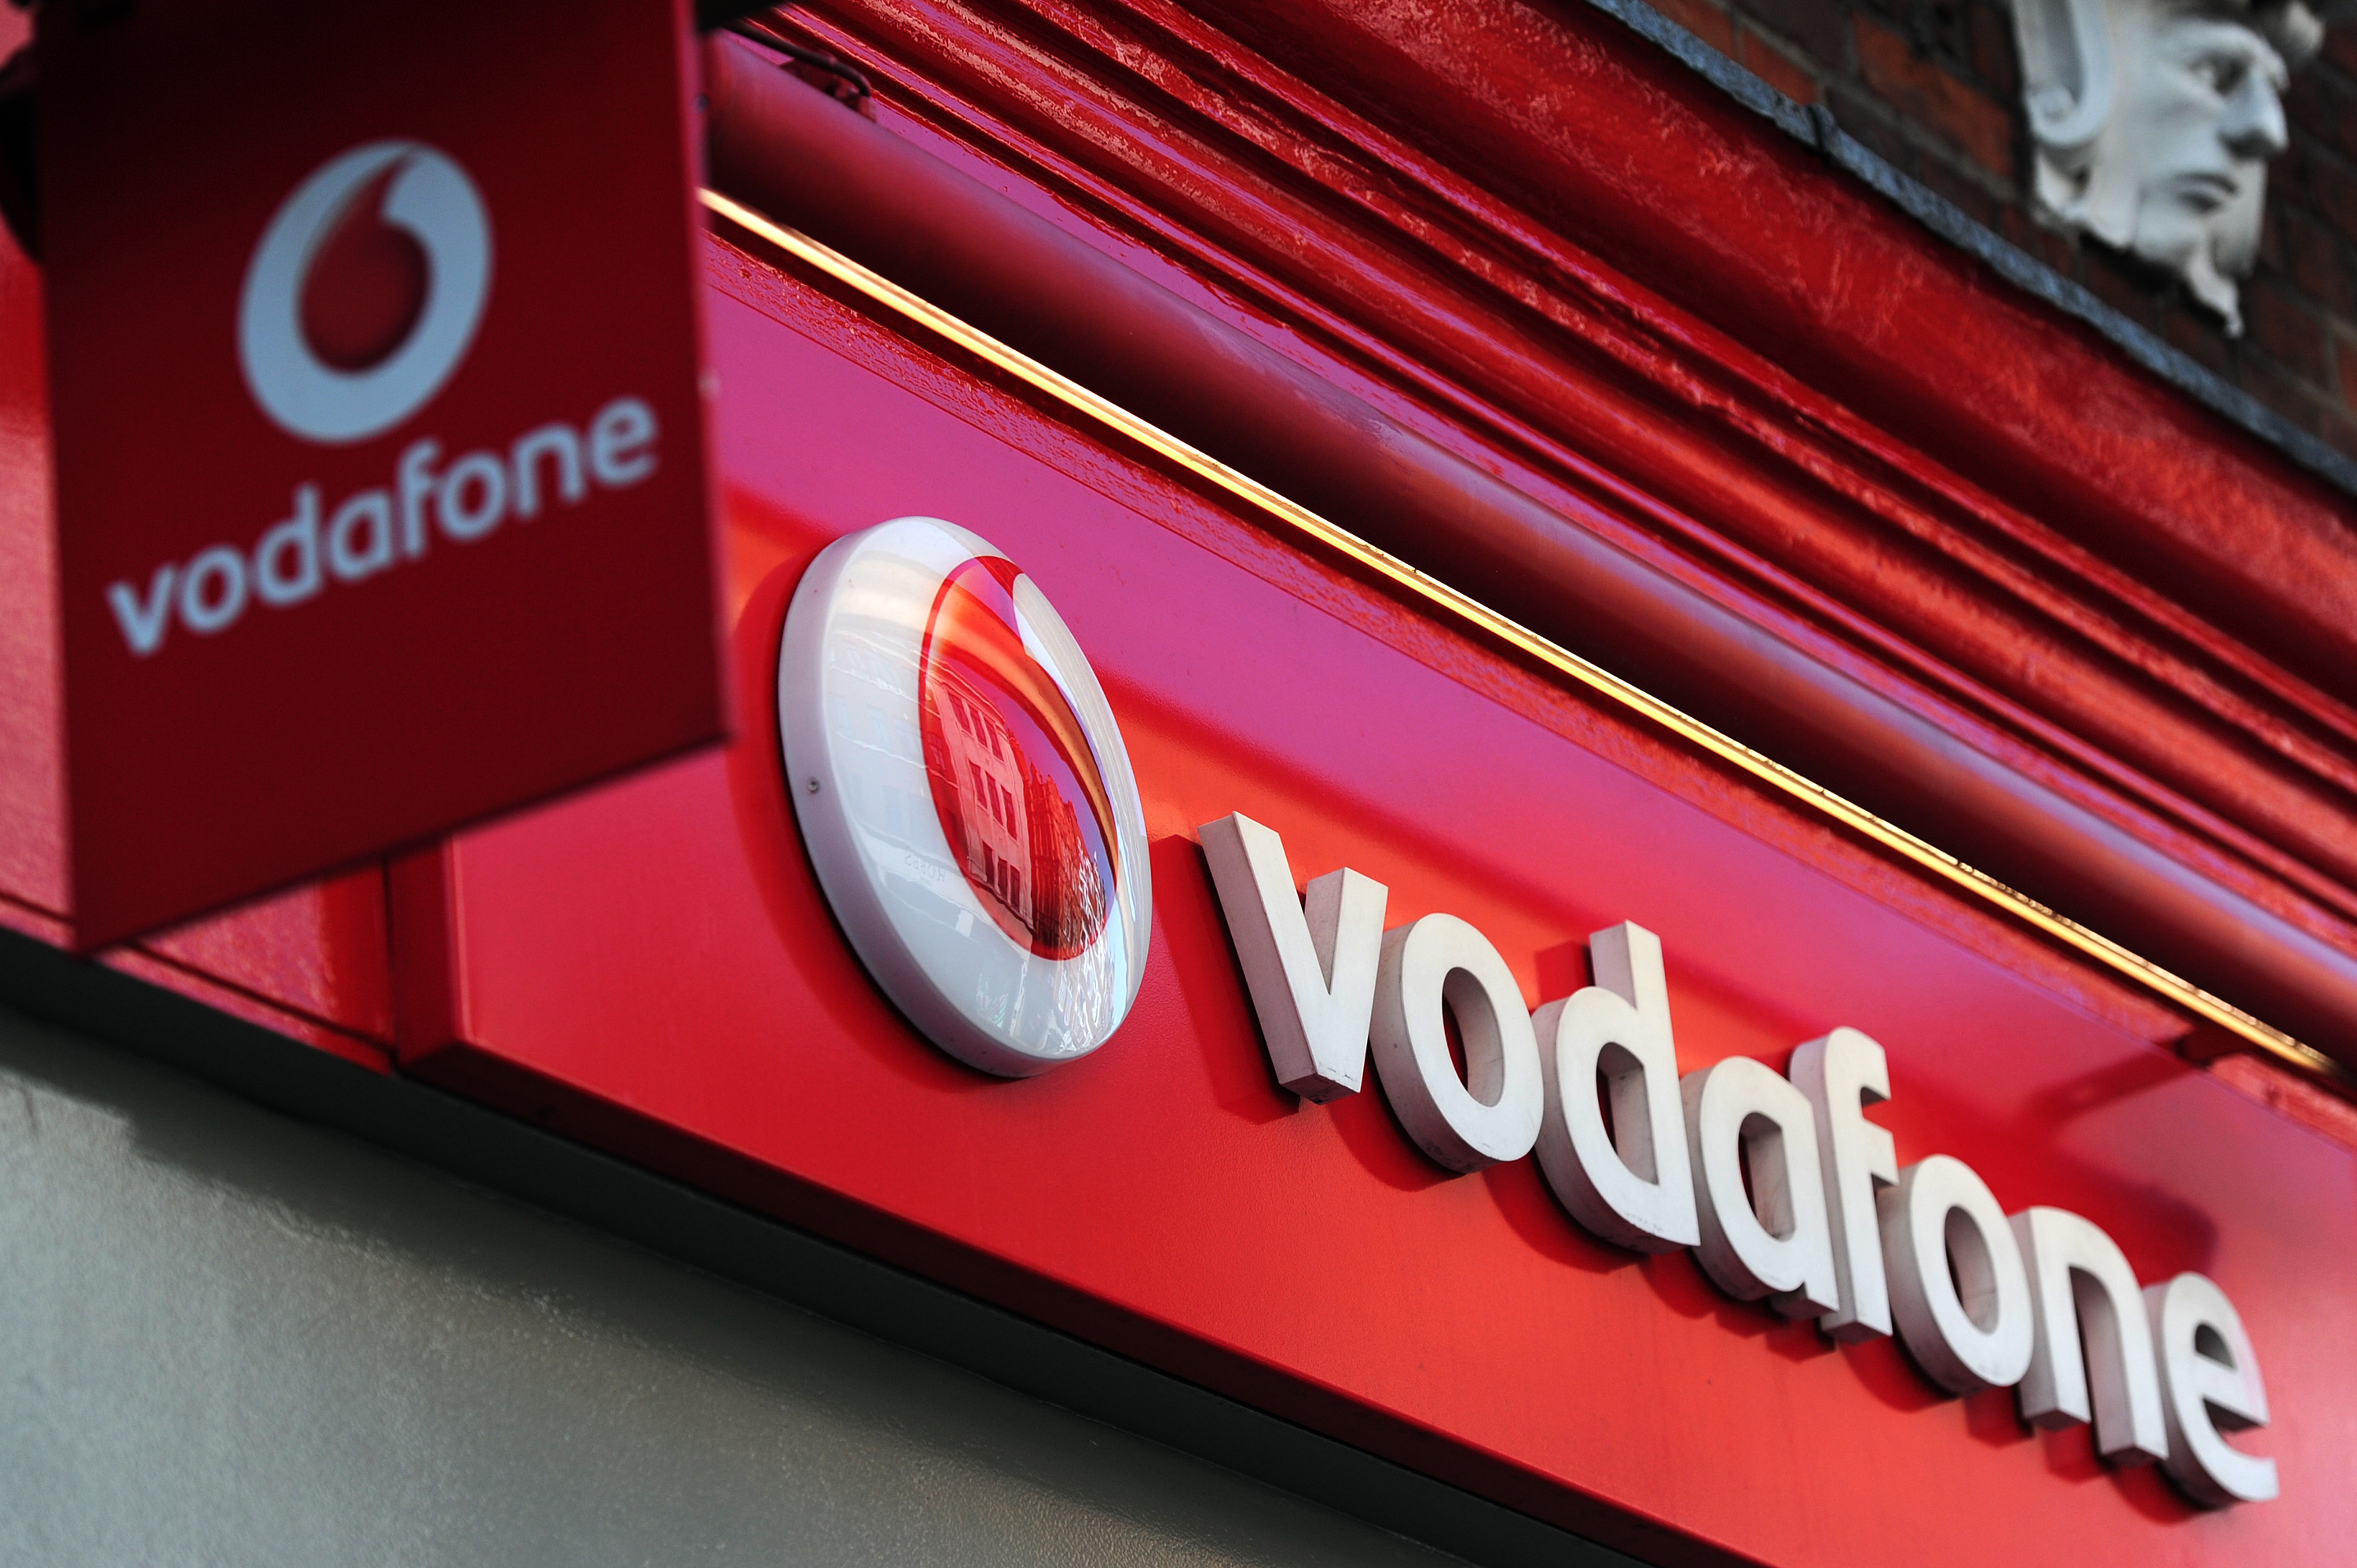 vodafone-to-acquire-tikona-digital-networks-4g-spectrum